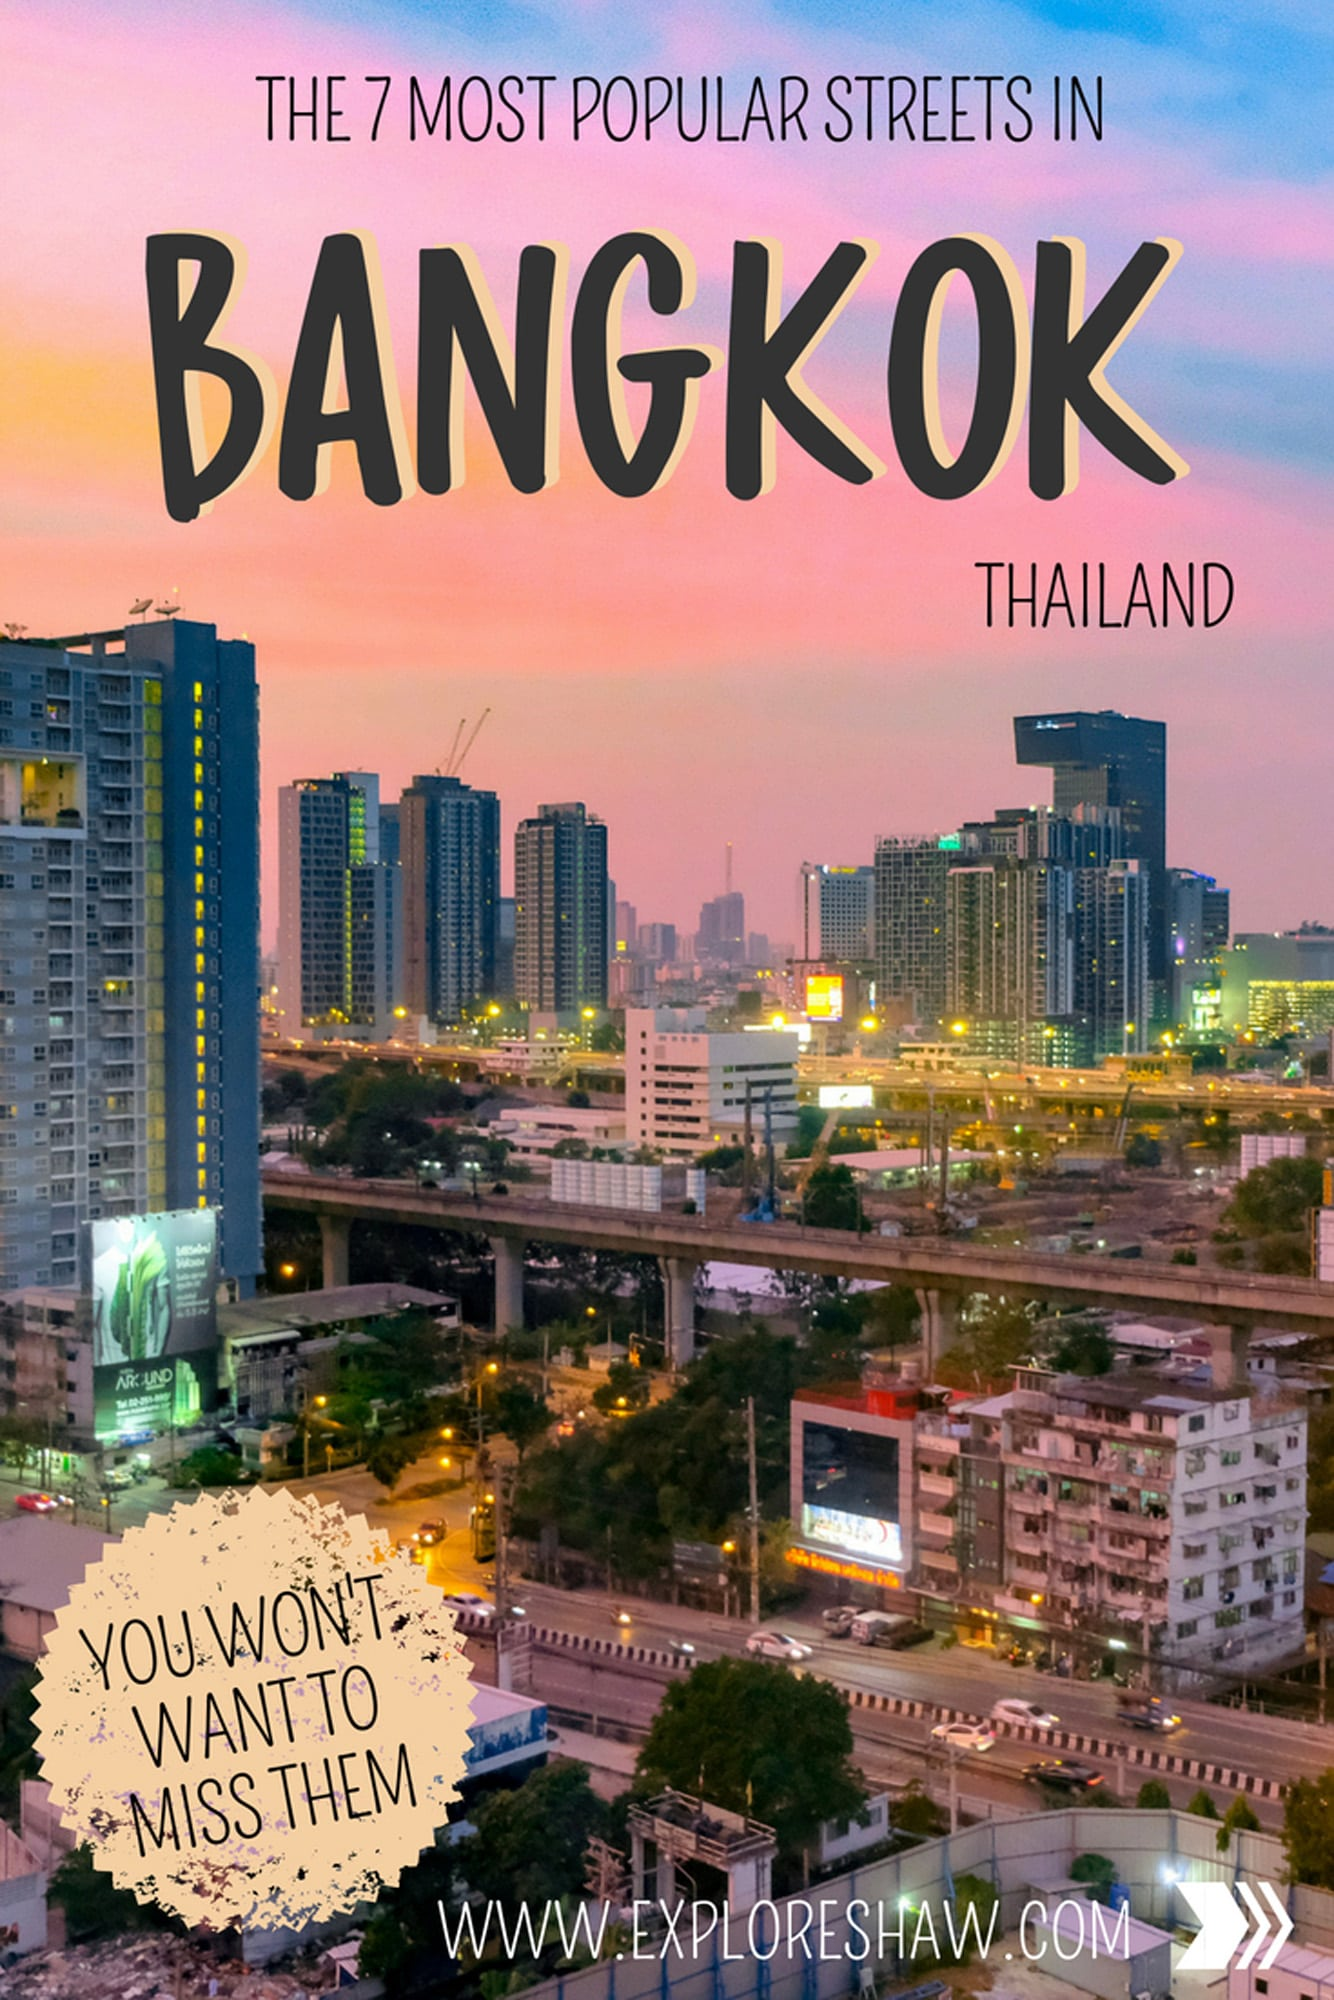 The 7 Most Popular Streets In Bangkok